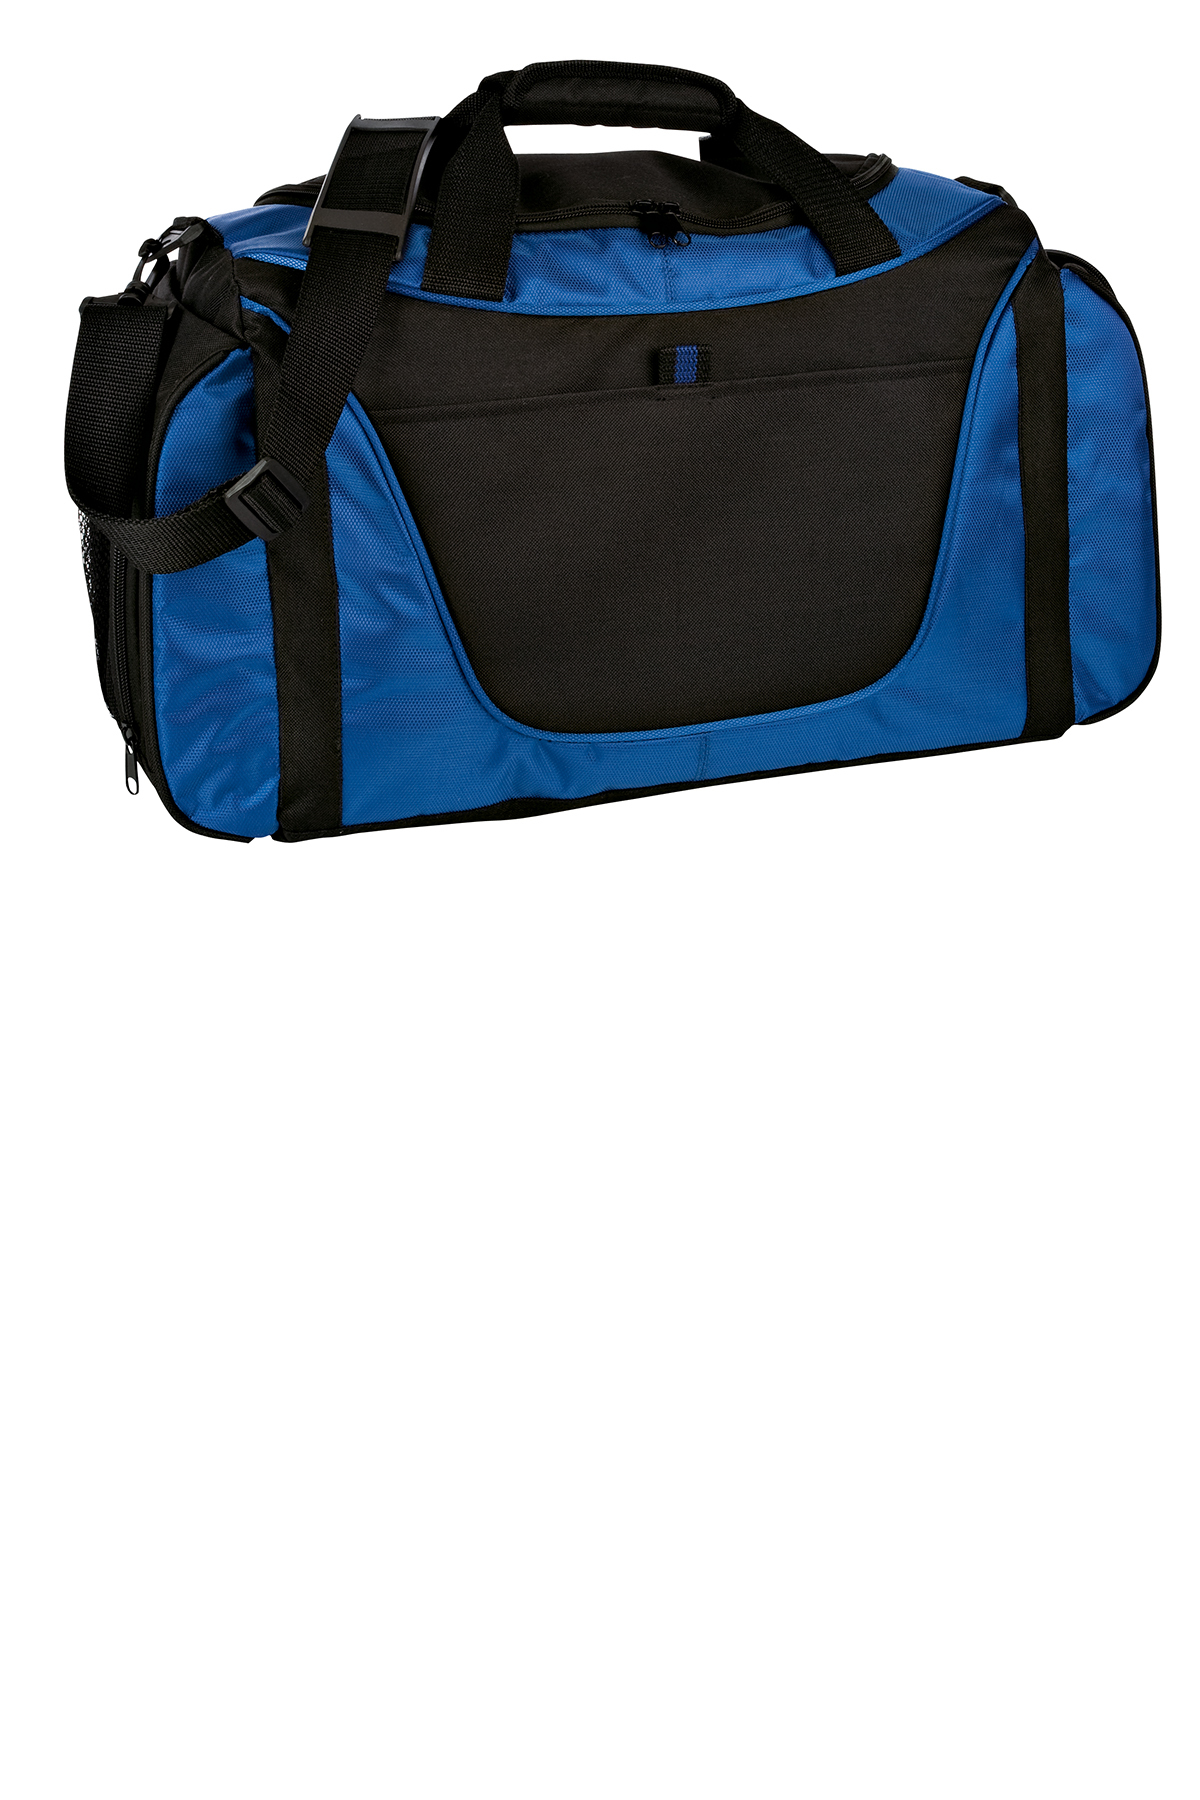 Port Authority® BG1050 Improved Two-Tone Medium Duffel